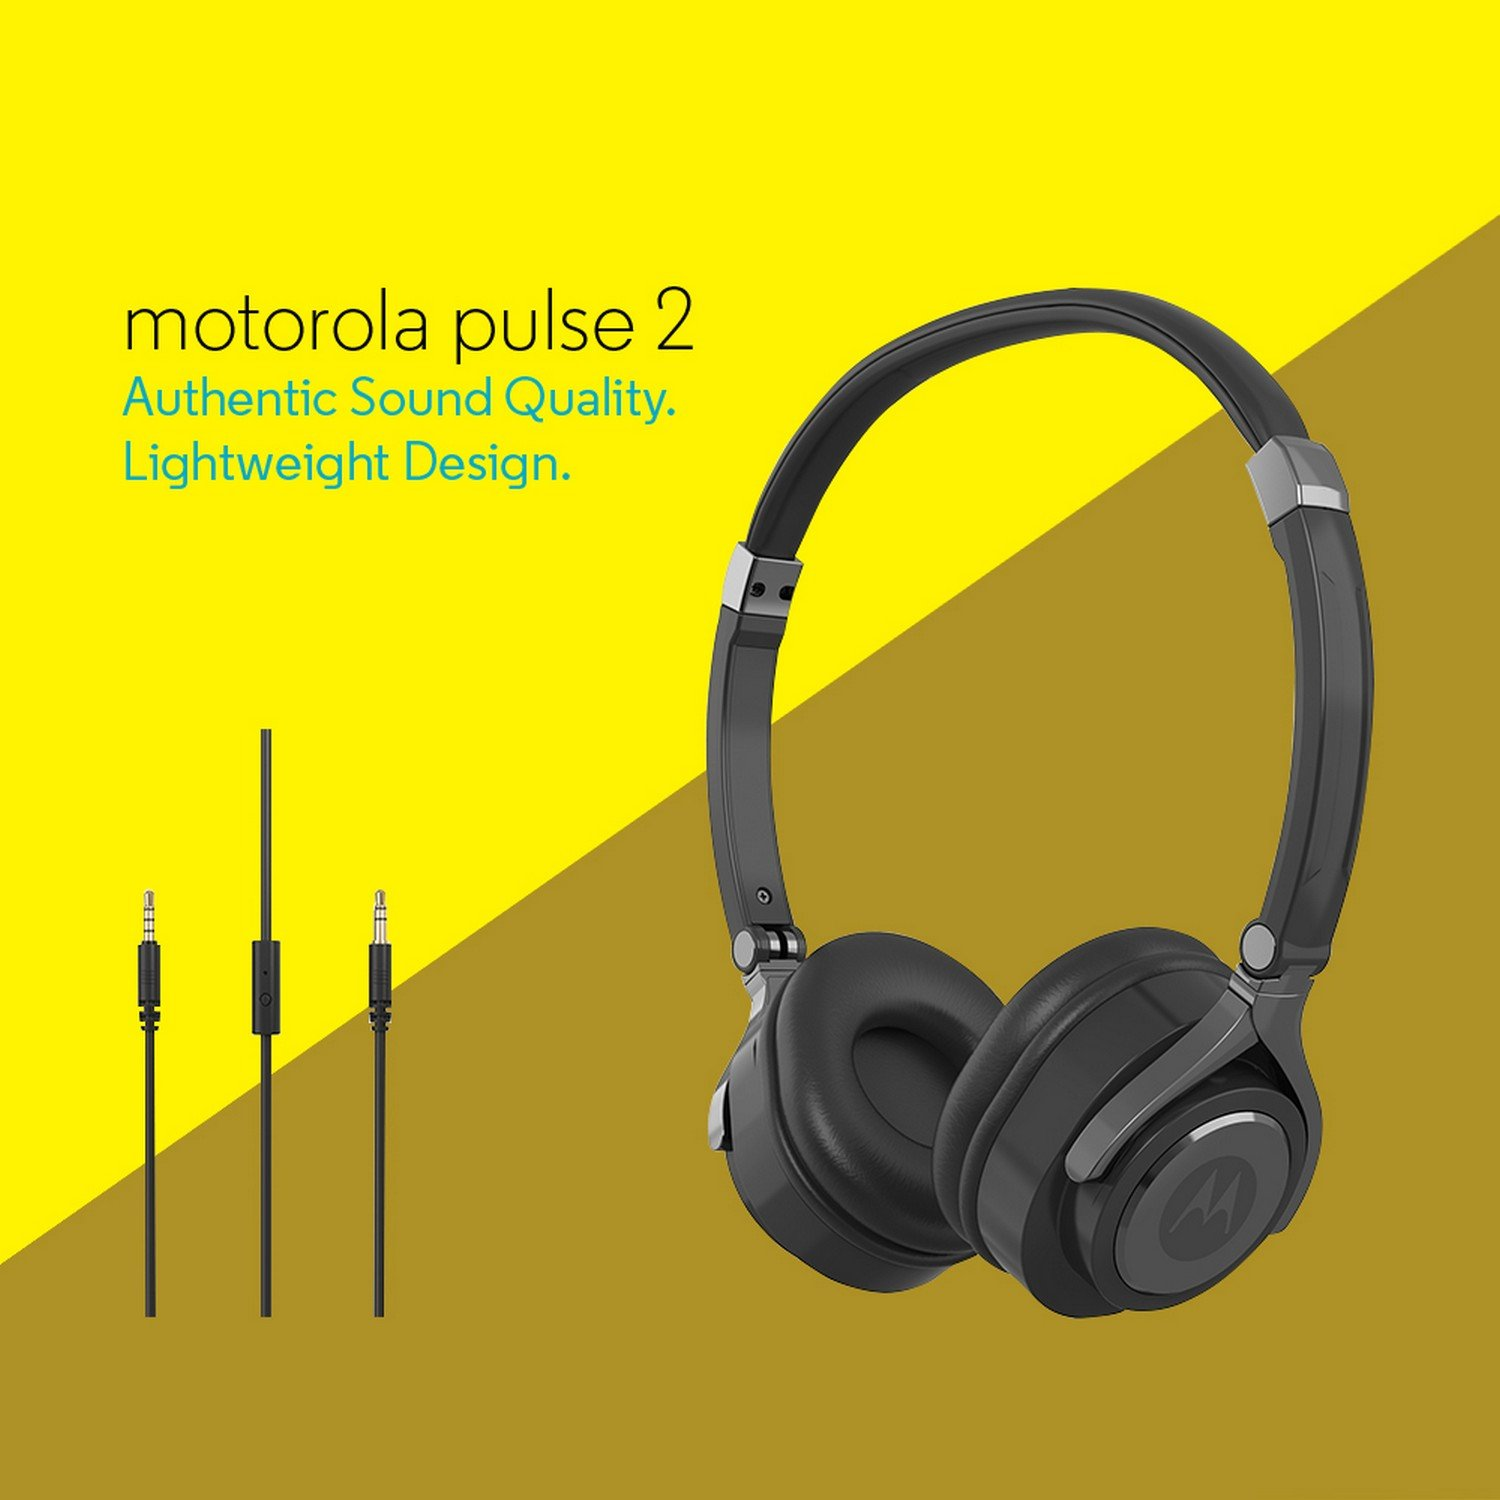 motorola pulse 2 wired headset review